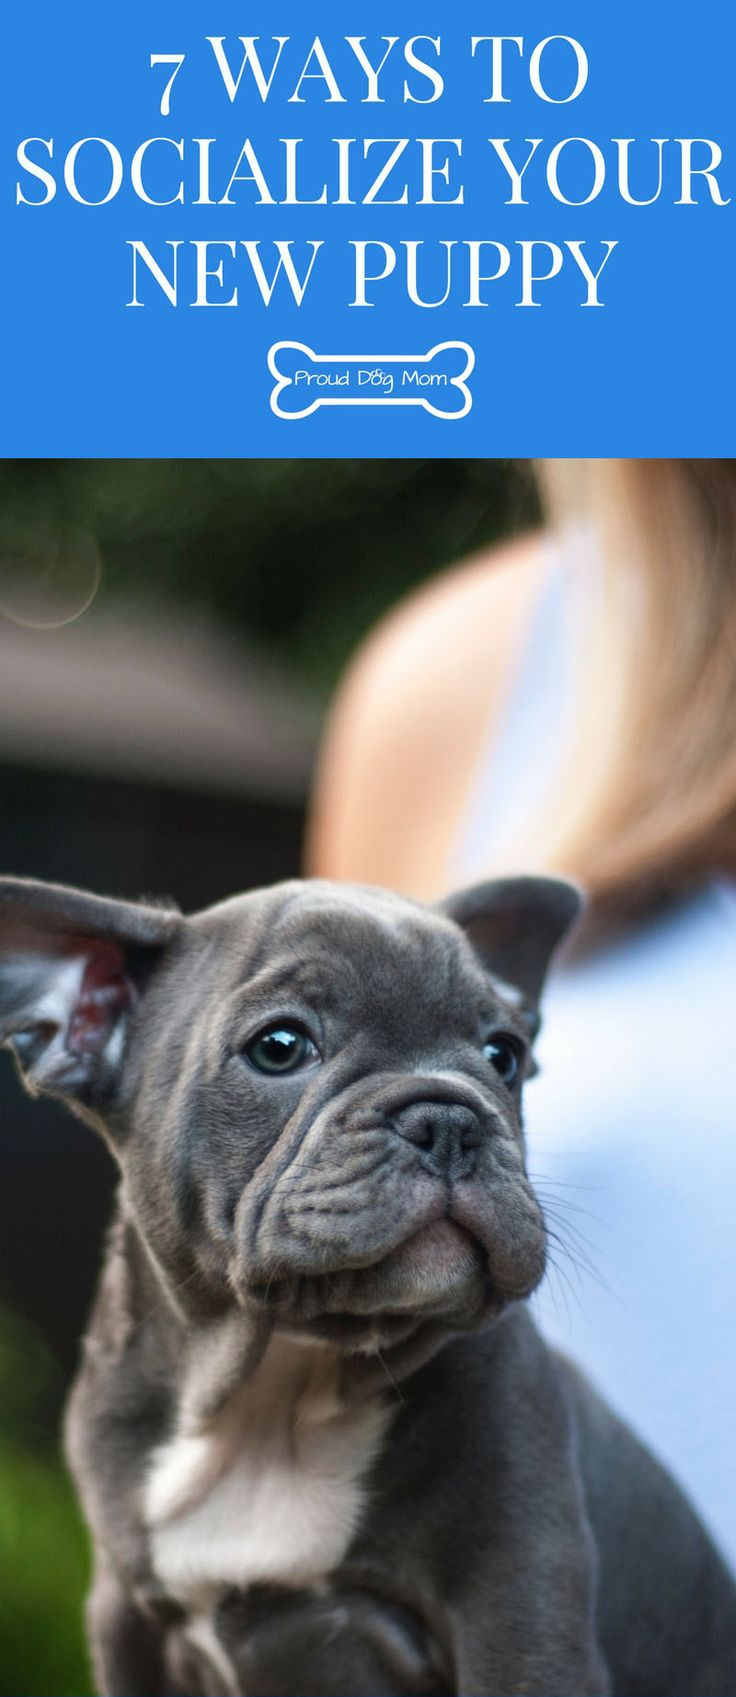 7 Ways To Socialize Your New Puppy | Dog Training Tips | Dog Care Tips |